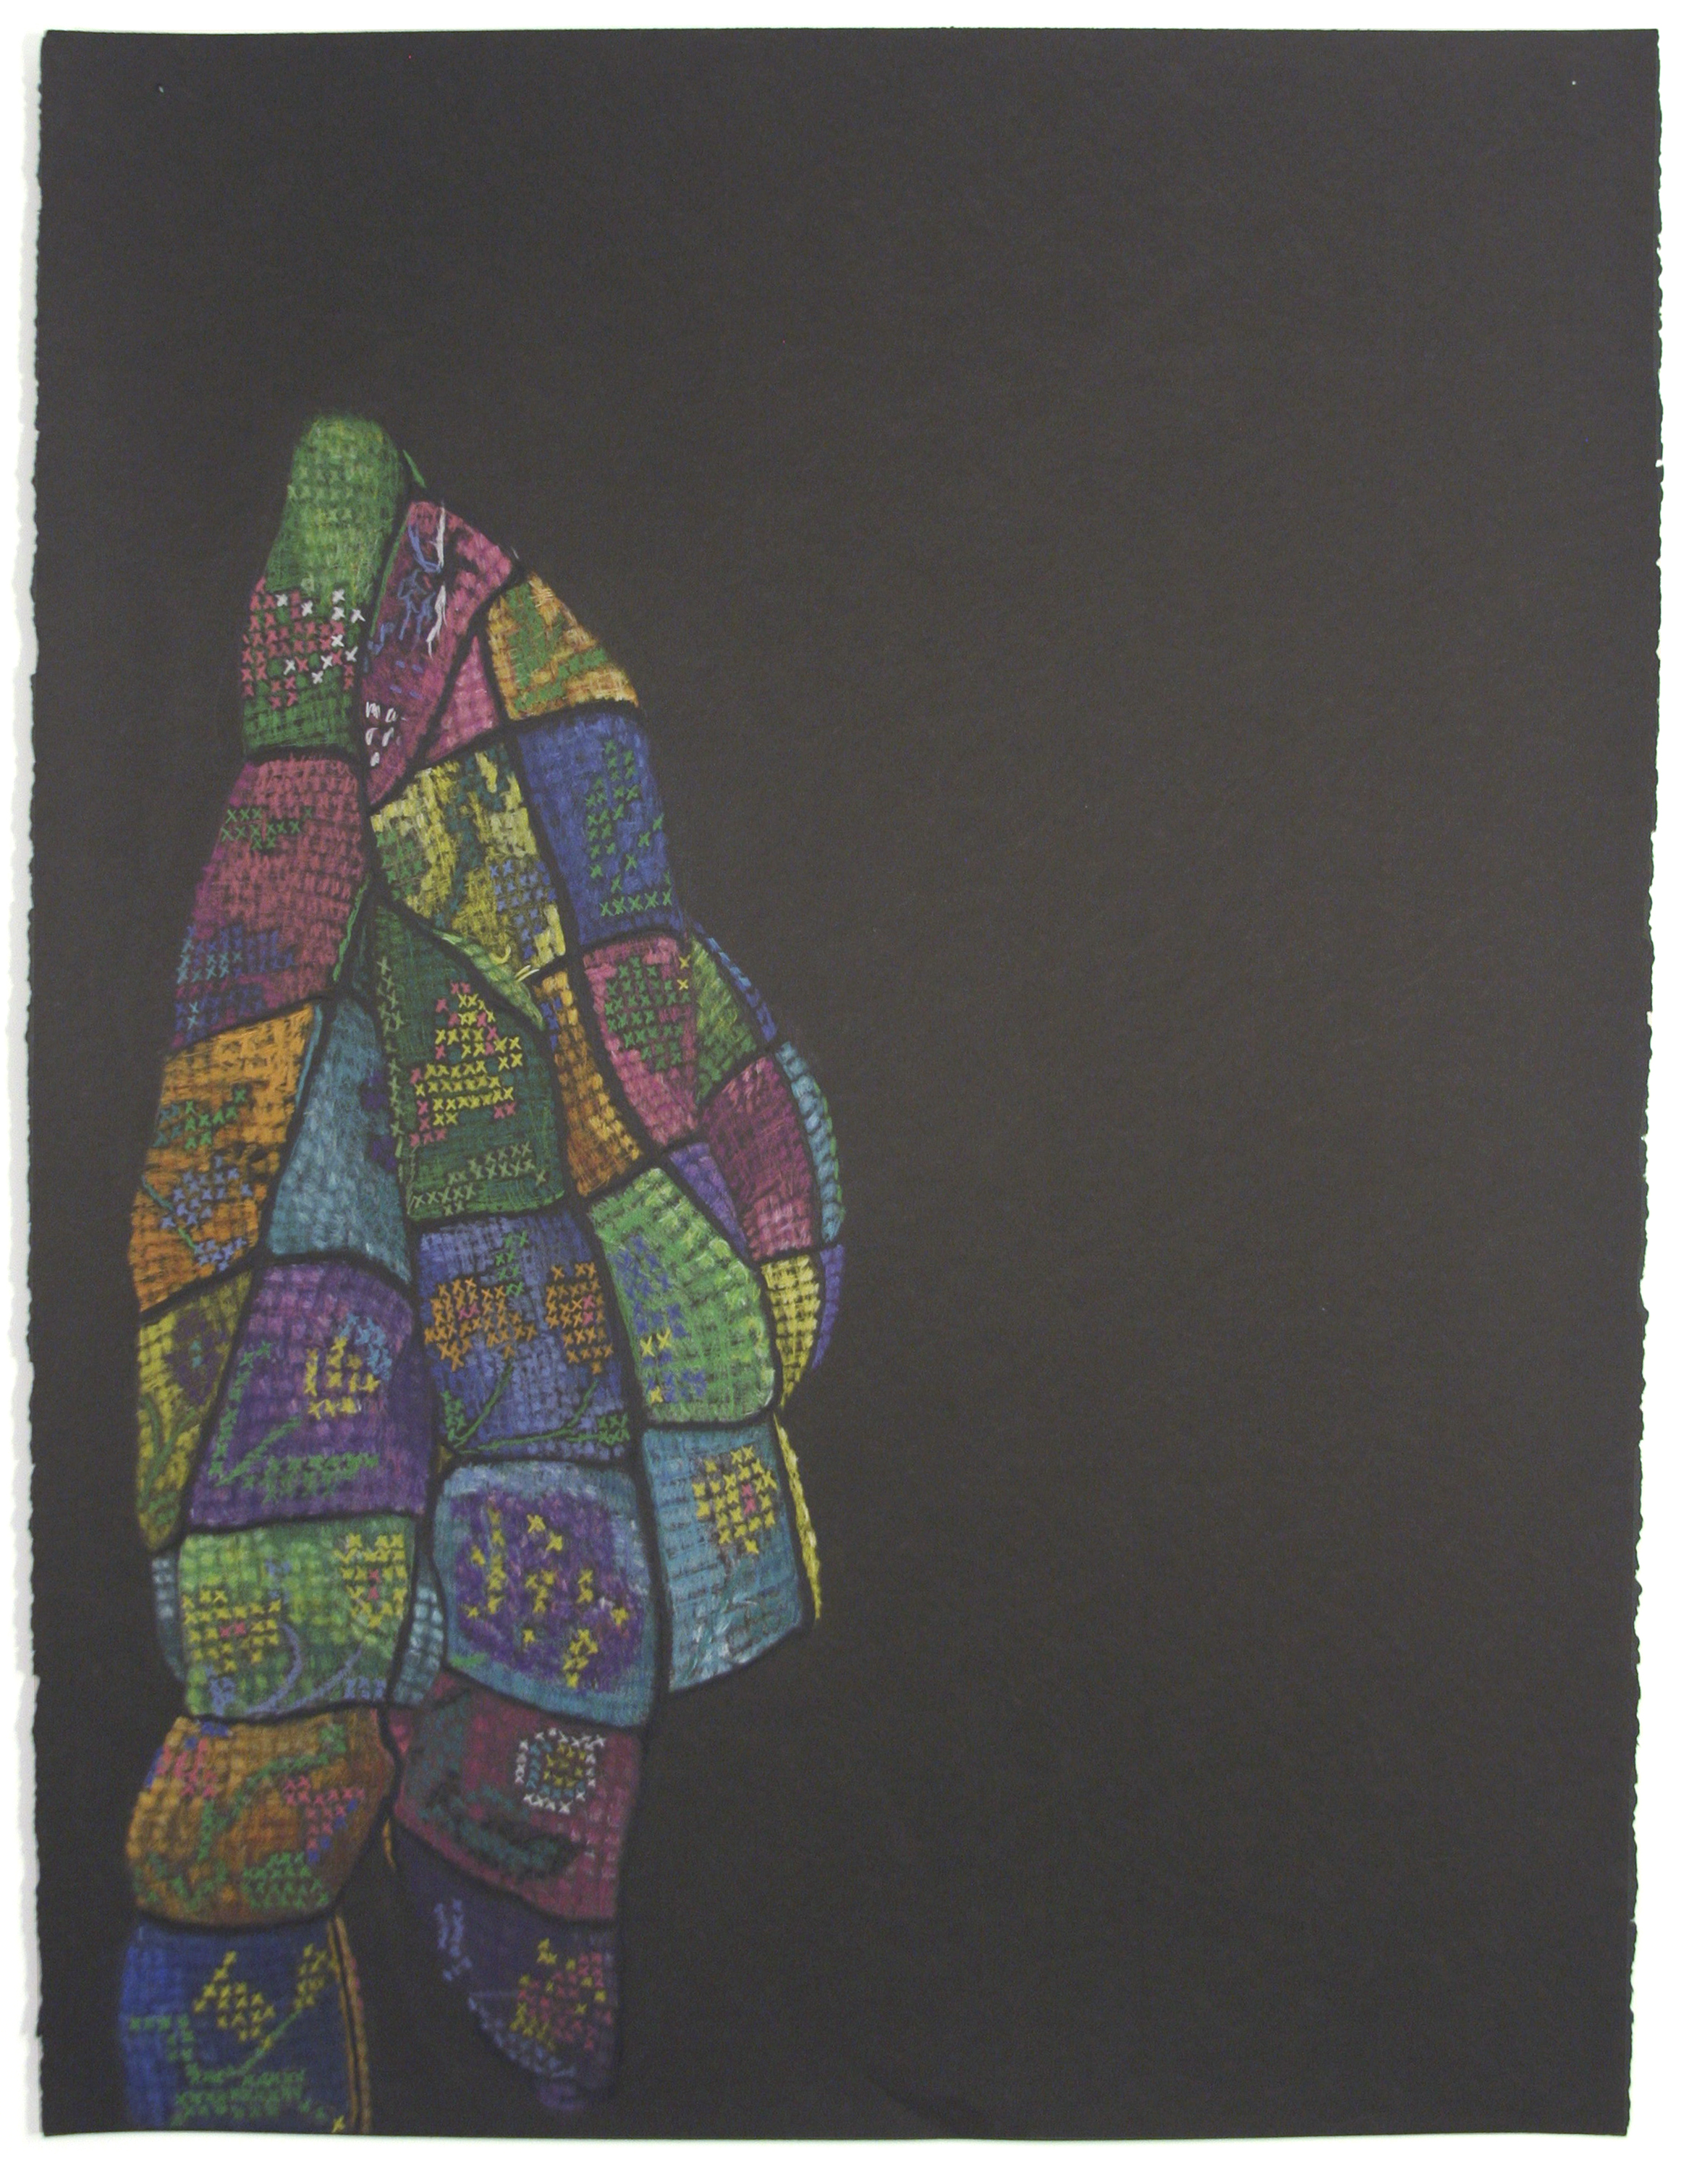 "RUBIKS SWEATER 22"" x 30"" Colour Pencil on Paper $700.00 